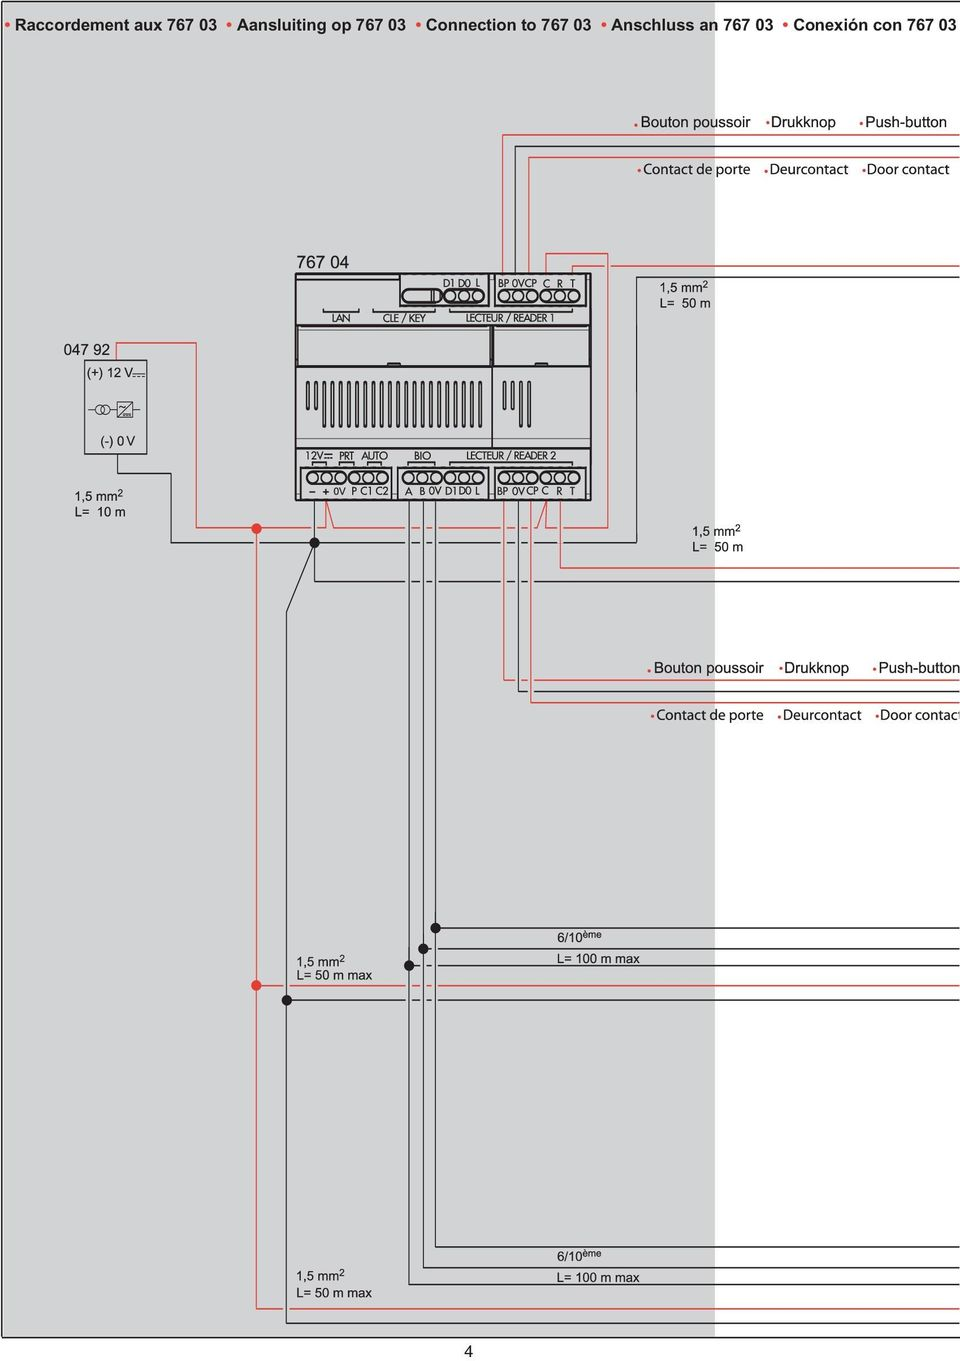 Connection to 767 03